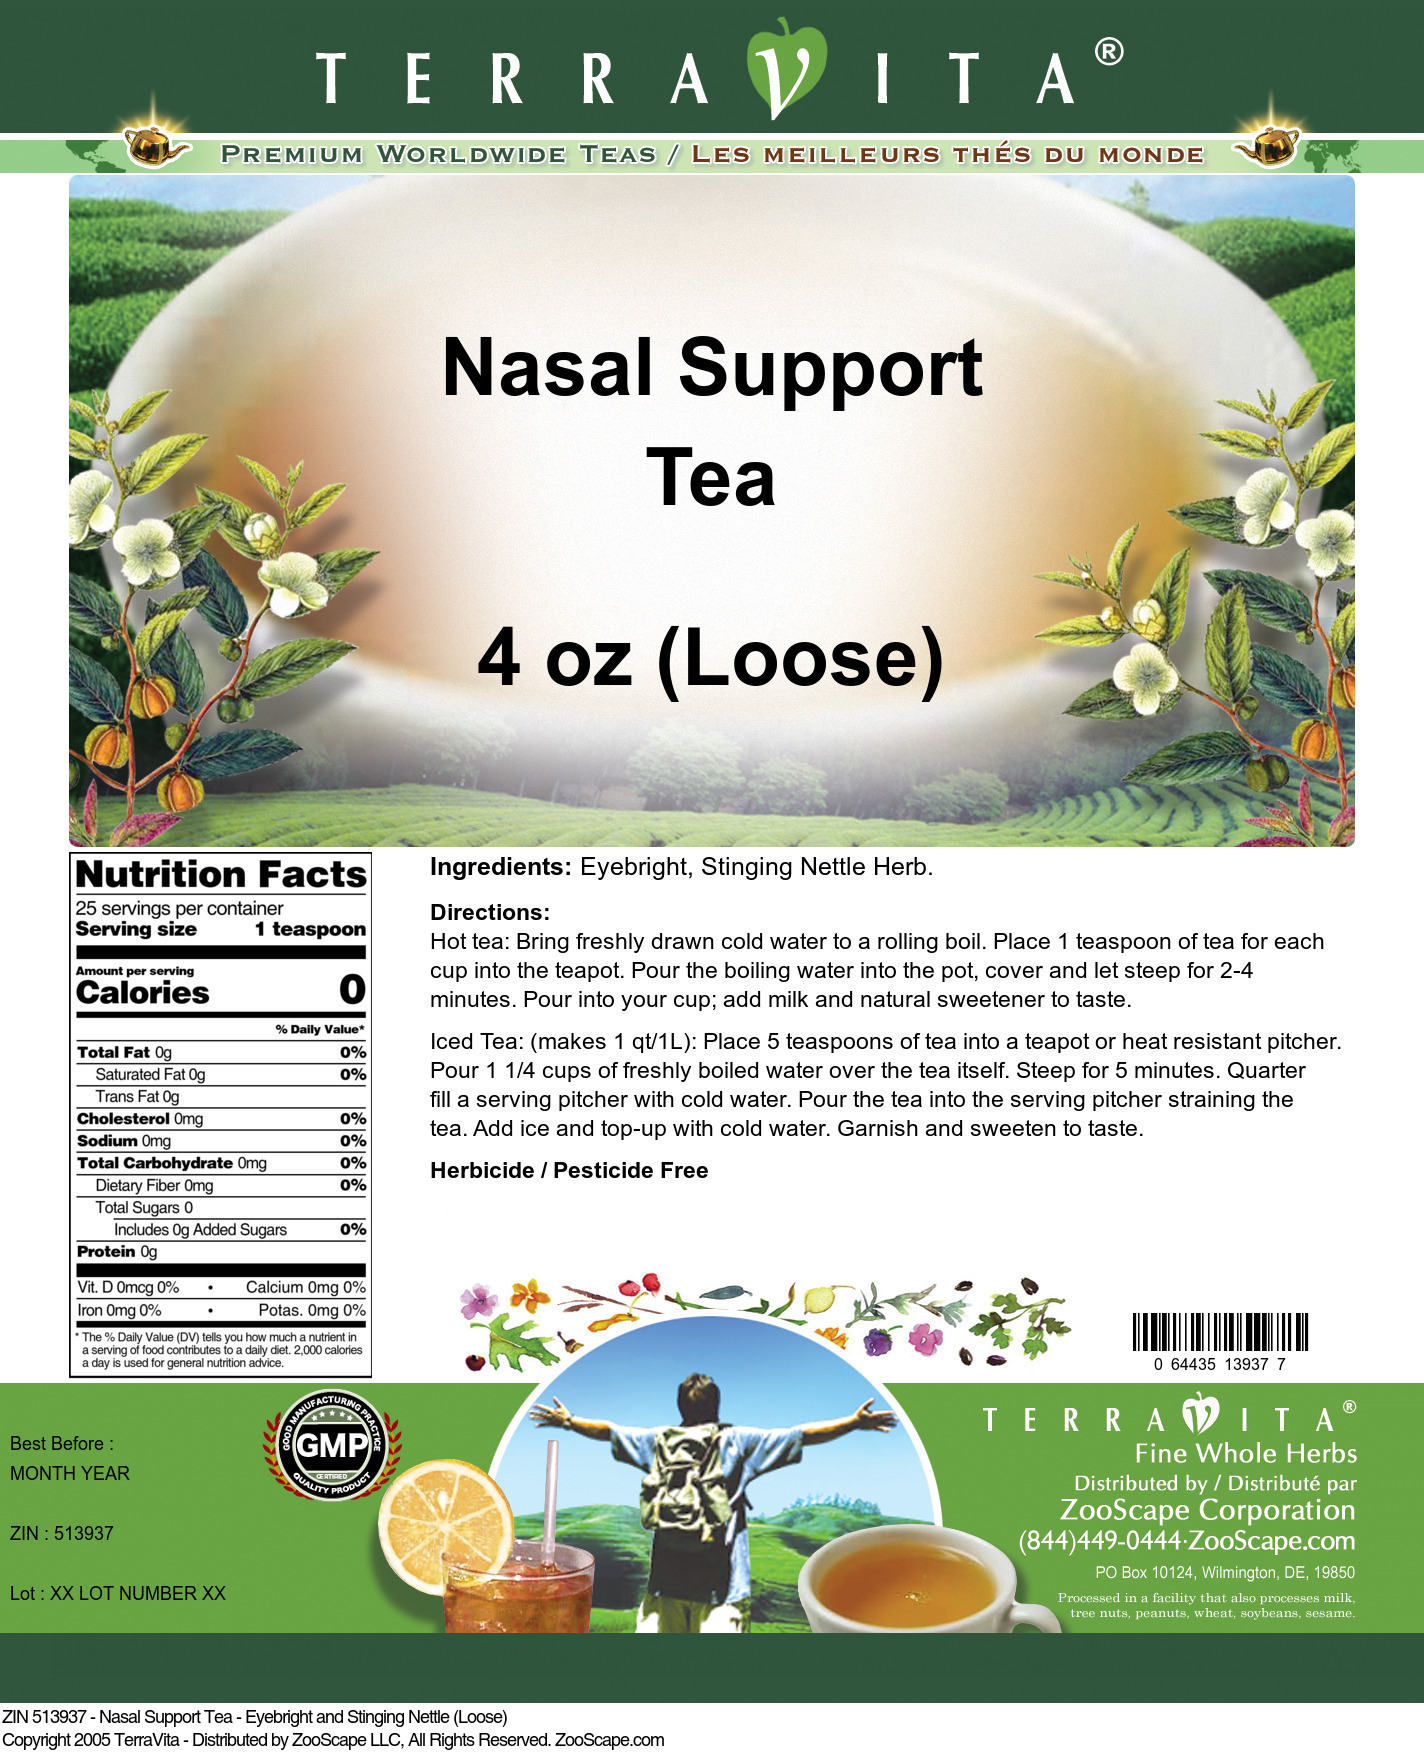 Nasal Support Tea - Eyebright and Stinging Nettle (Loose)